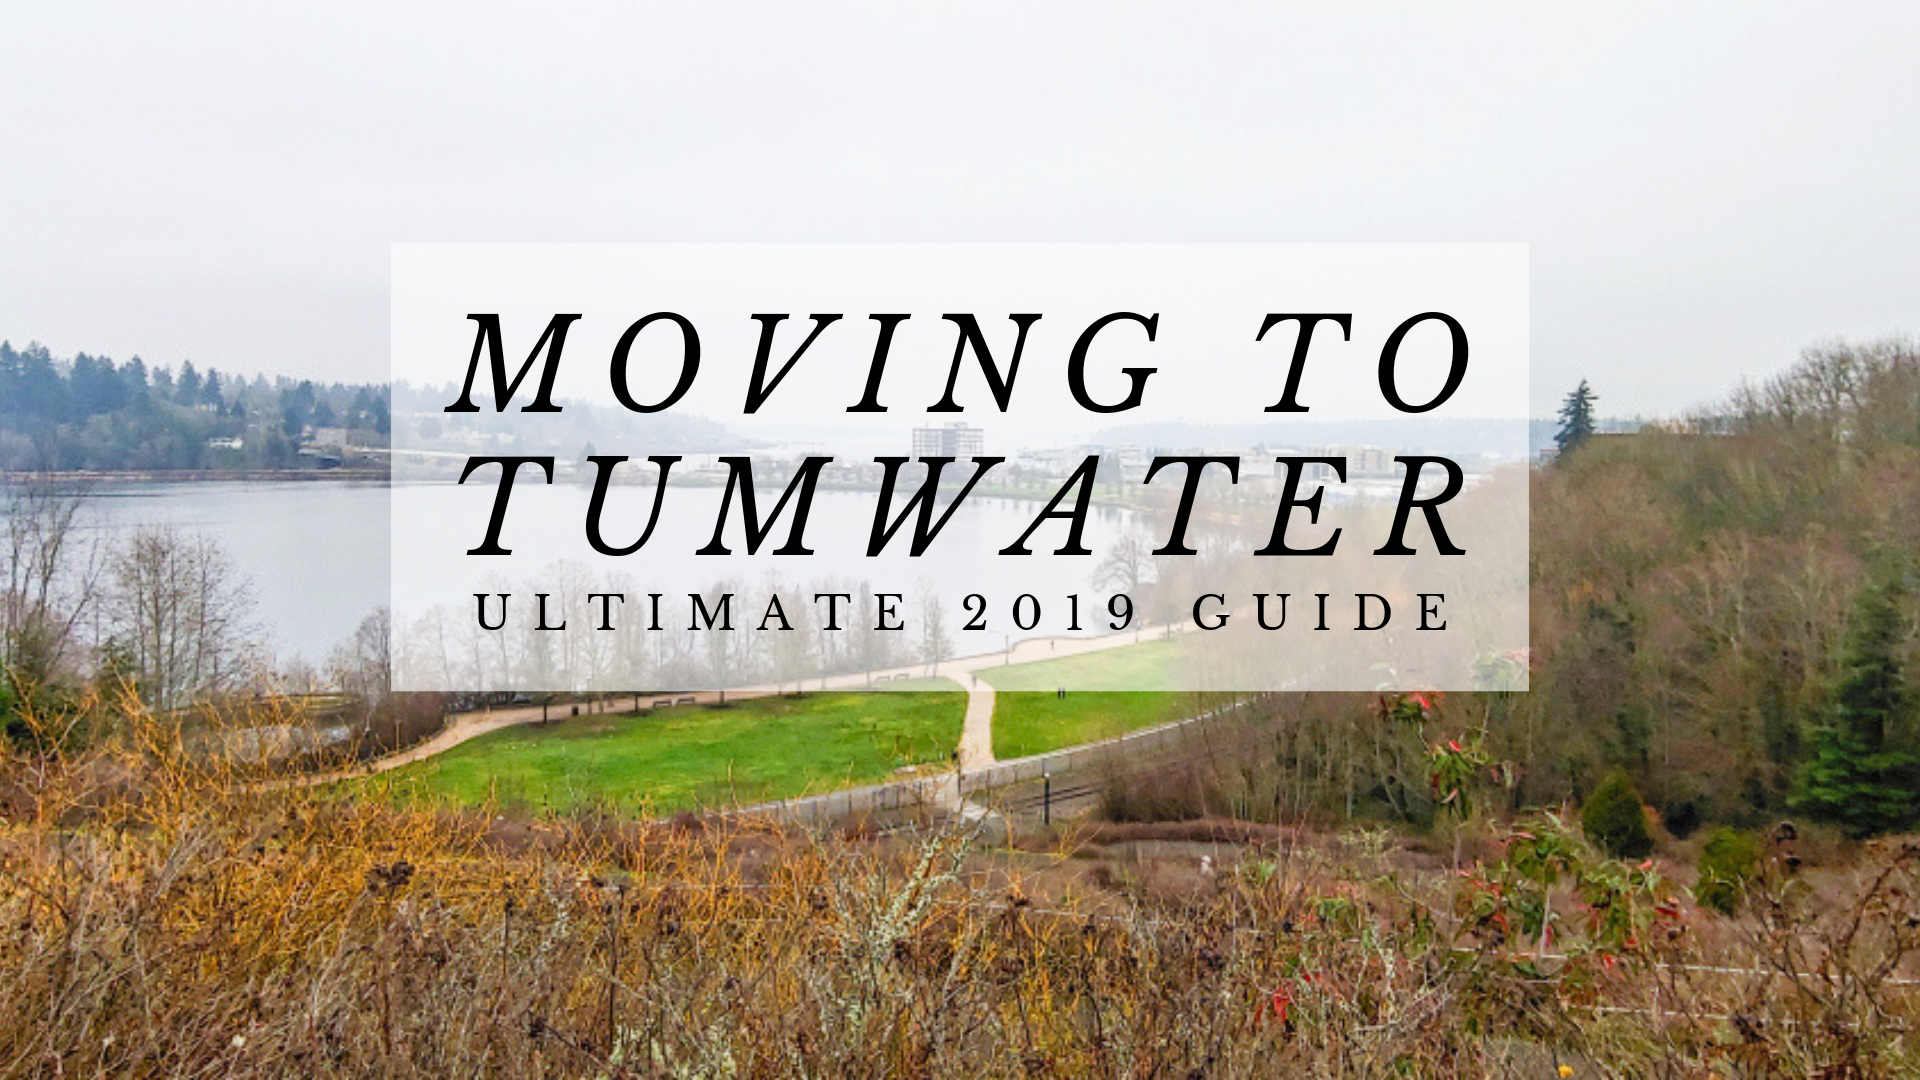 Moving to Tumwater, WA Ultimate Guide (2019) | Top Tips for